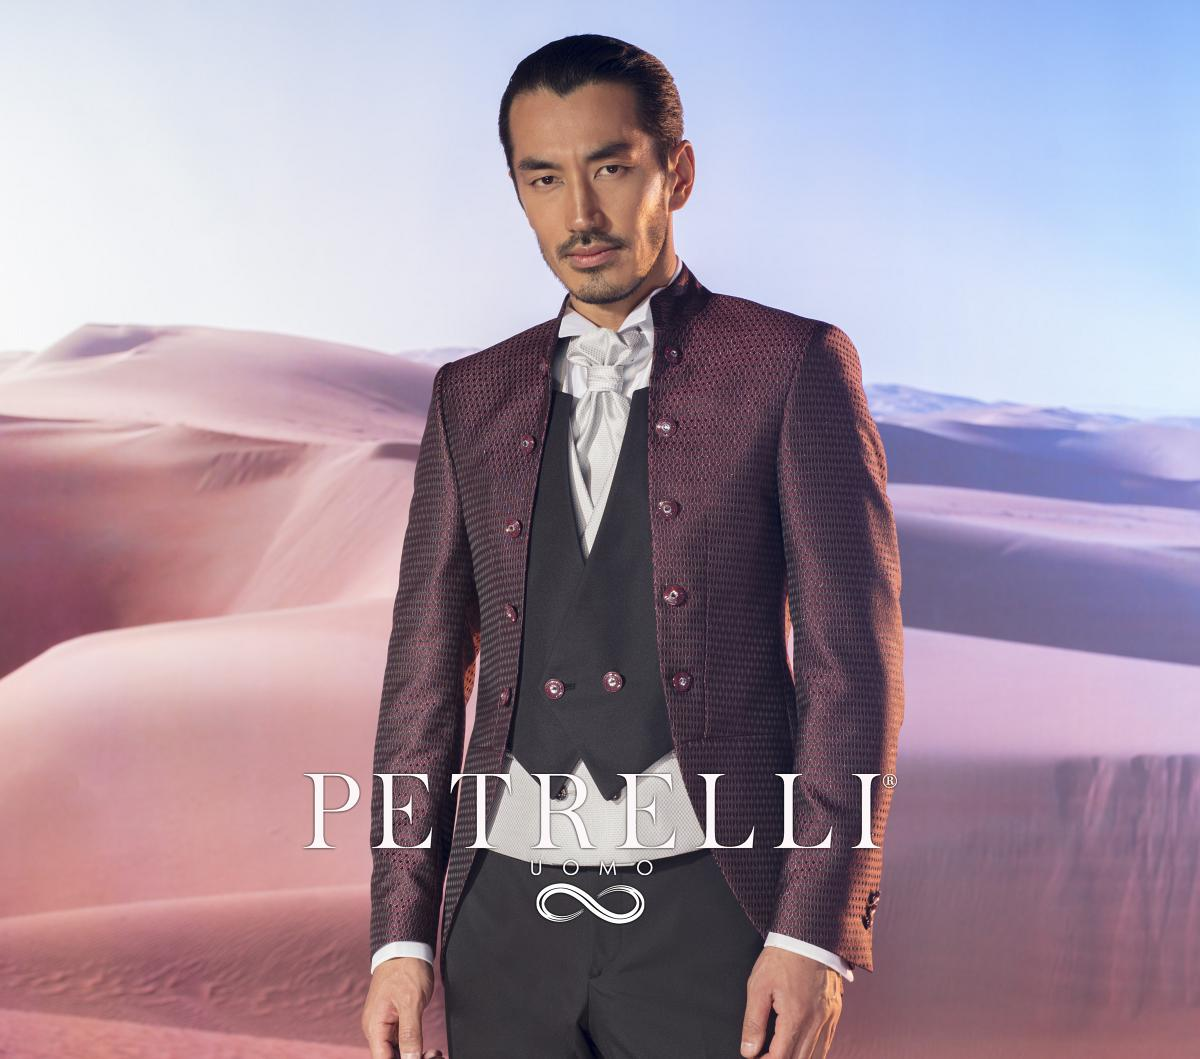 celli-spose-2020-uomo-petrelli-MOD_F50005DB_CAMP_442_INFINITY_P65 – Copia